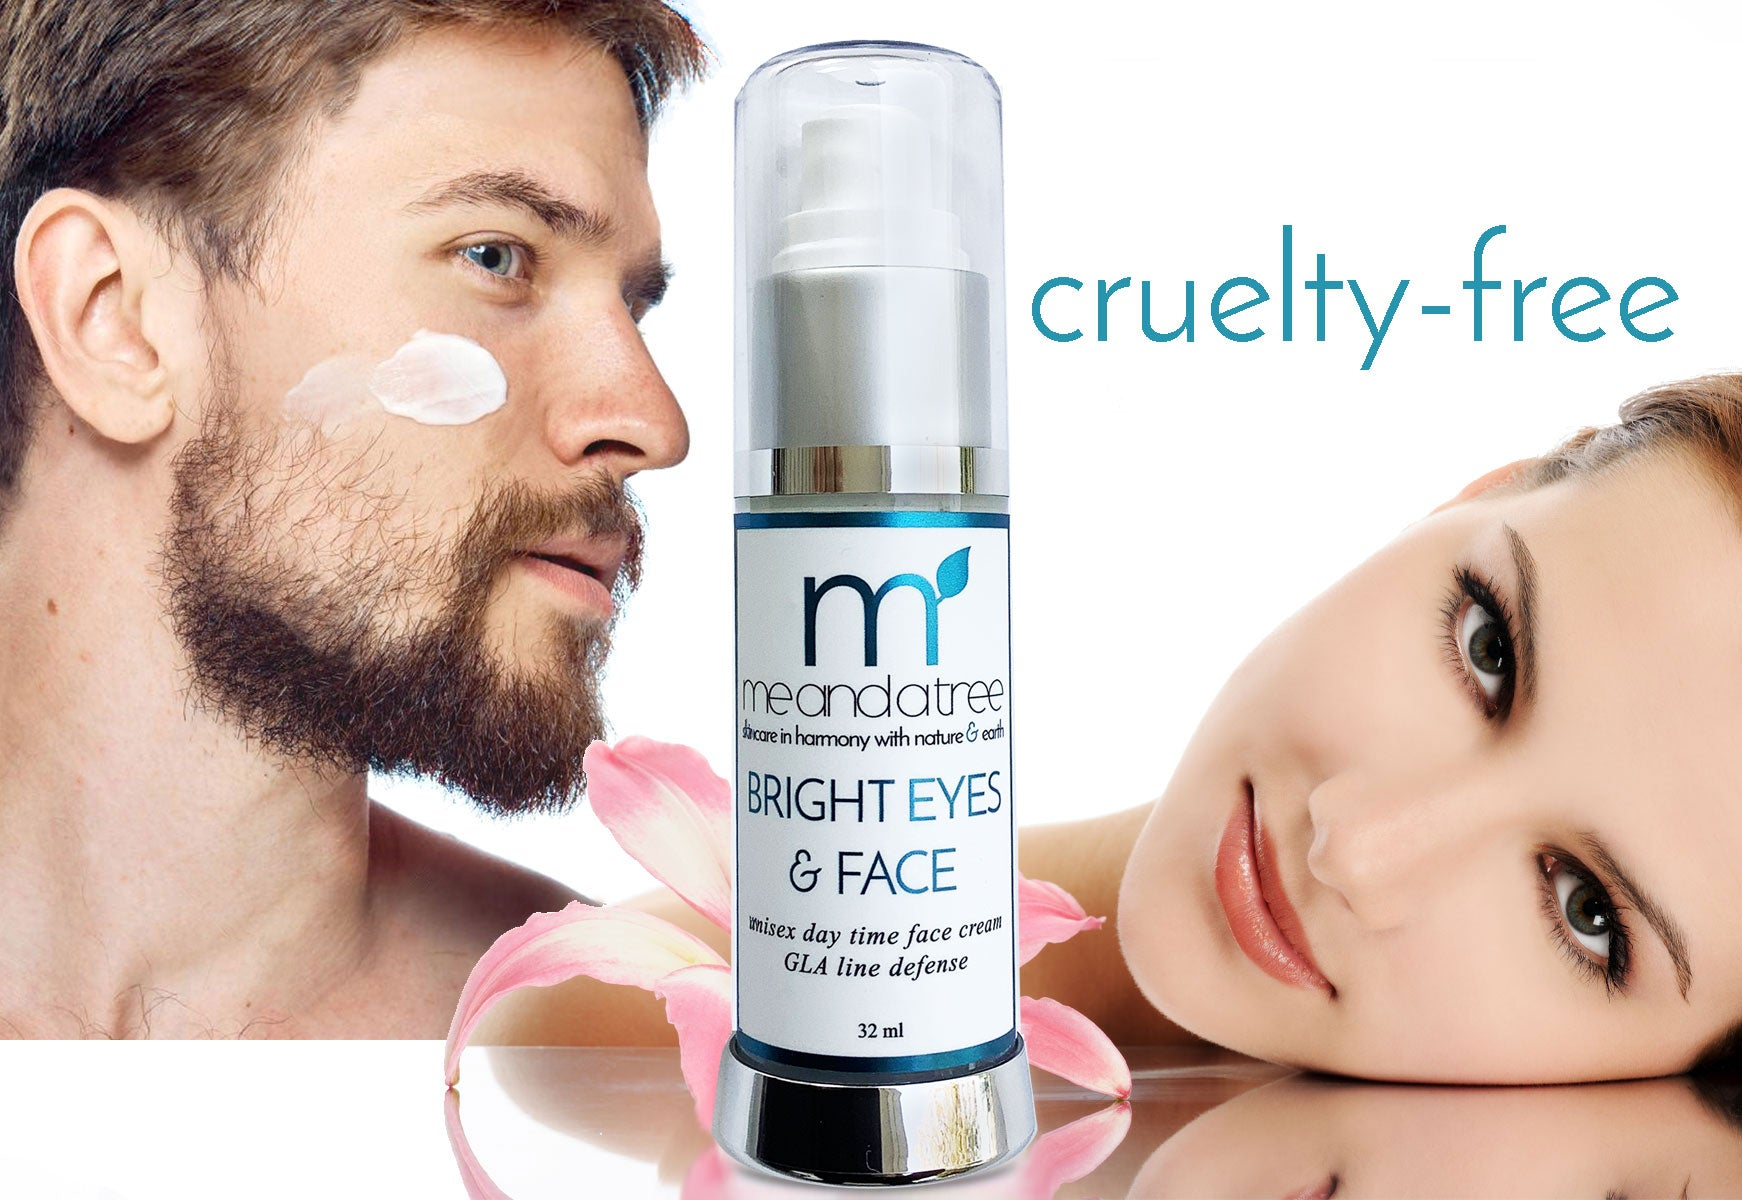 Best Bright Eyes Face Natural Face Care Wrinkle Face Cream